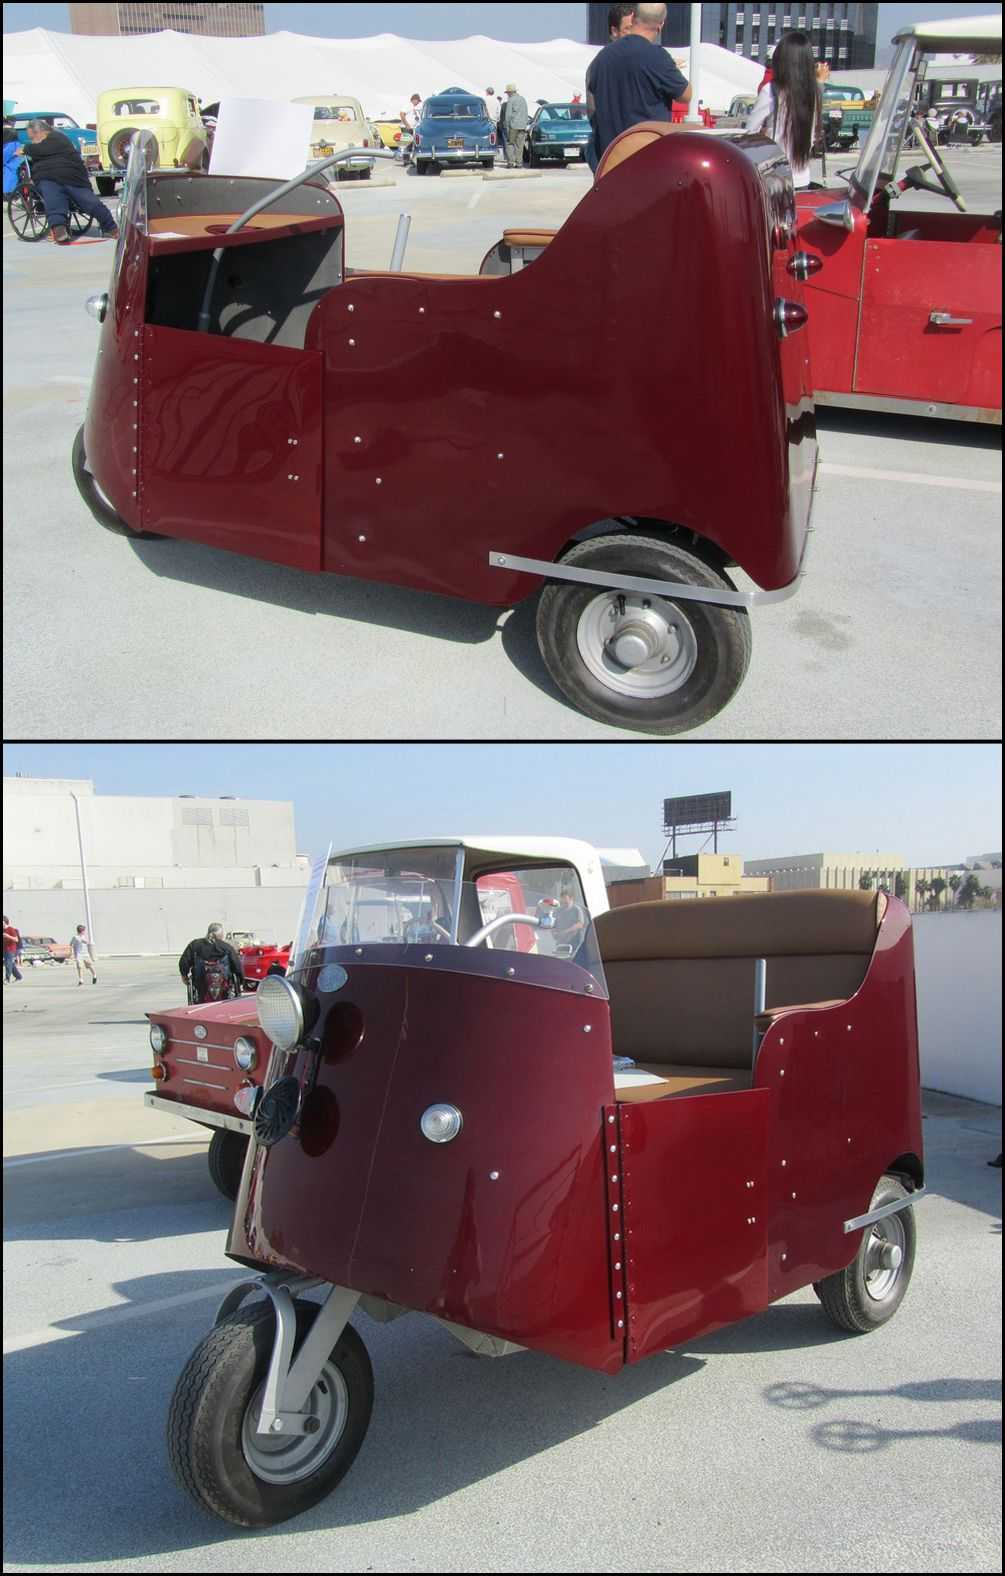 The Autoette Was A Microcar Created And Manufactured From 1948 To 1970 S By Royce Seevers Owner Of Electric Car Company Inc Long Beach